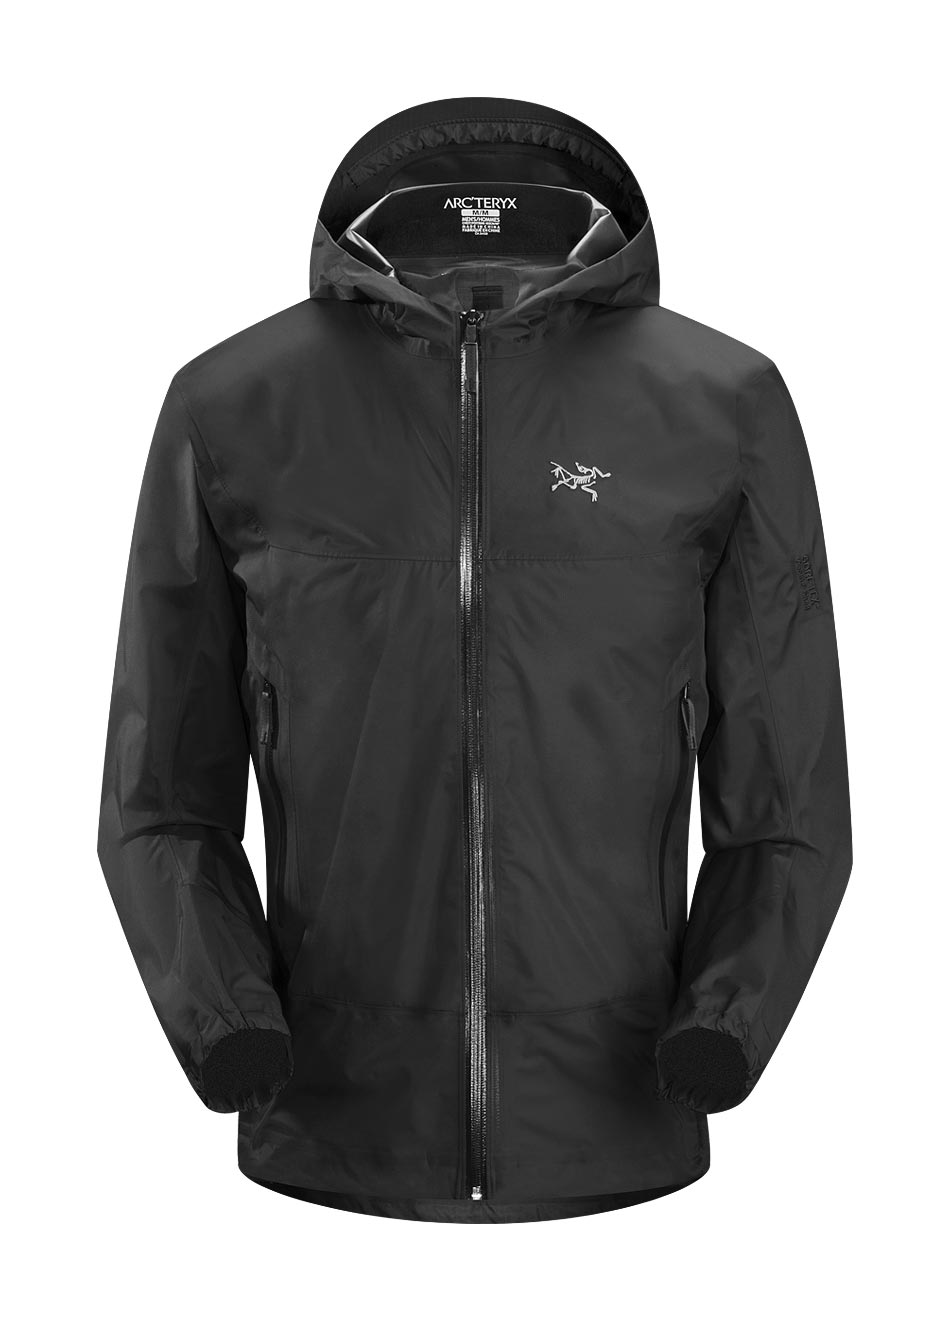 Arcteryx Black Consular Jacket - New